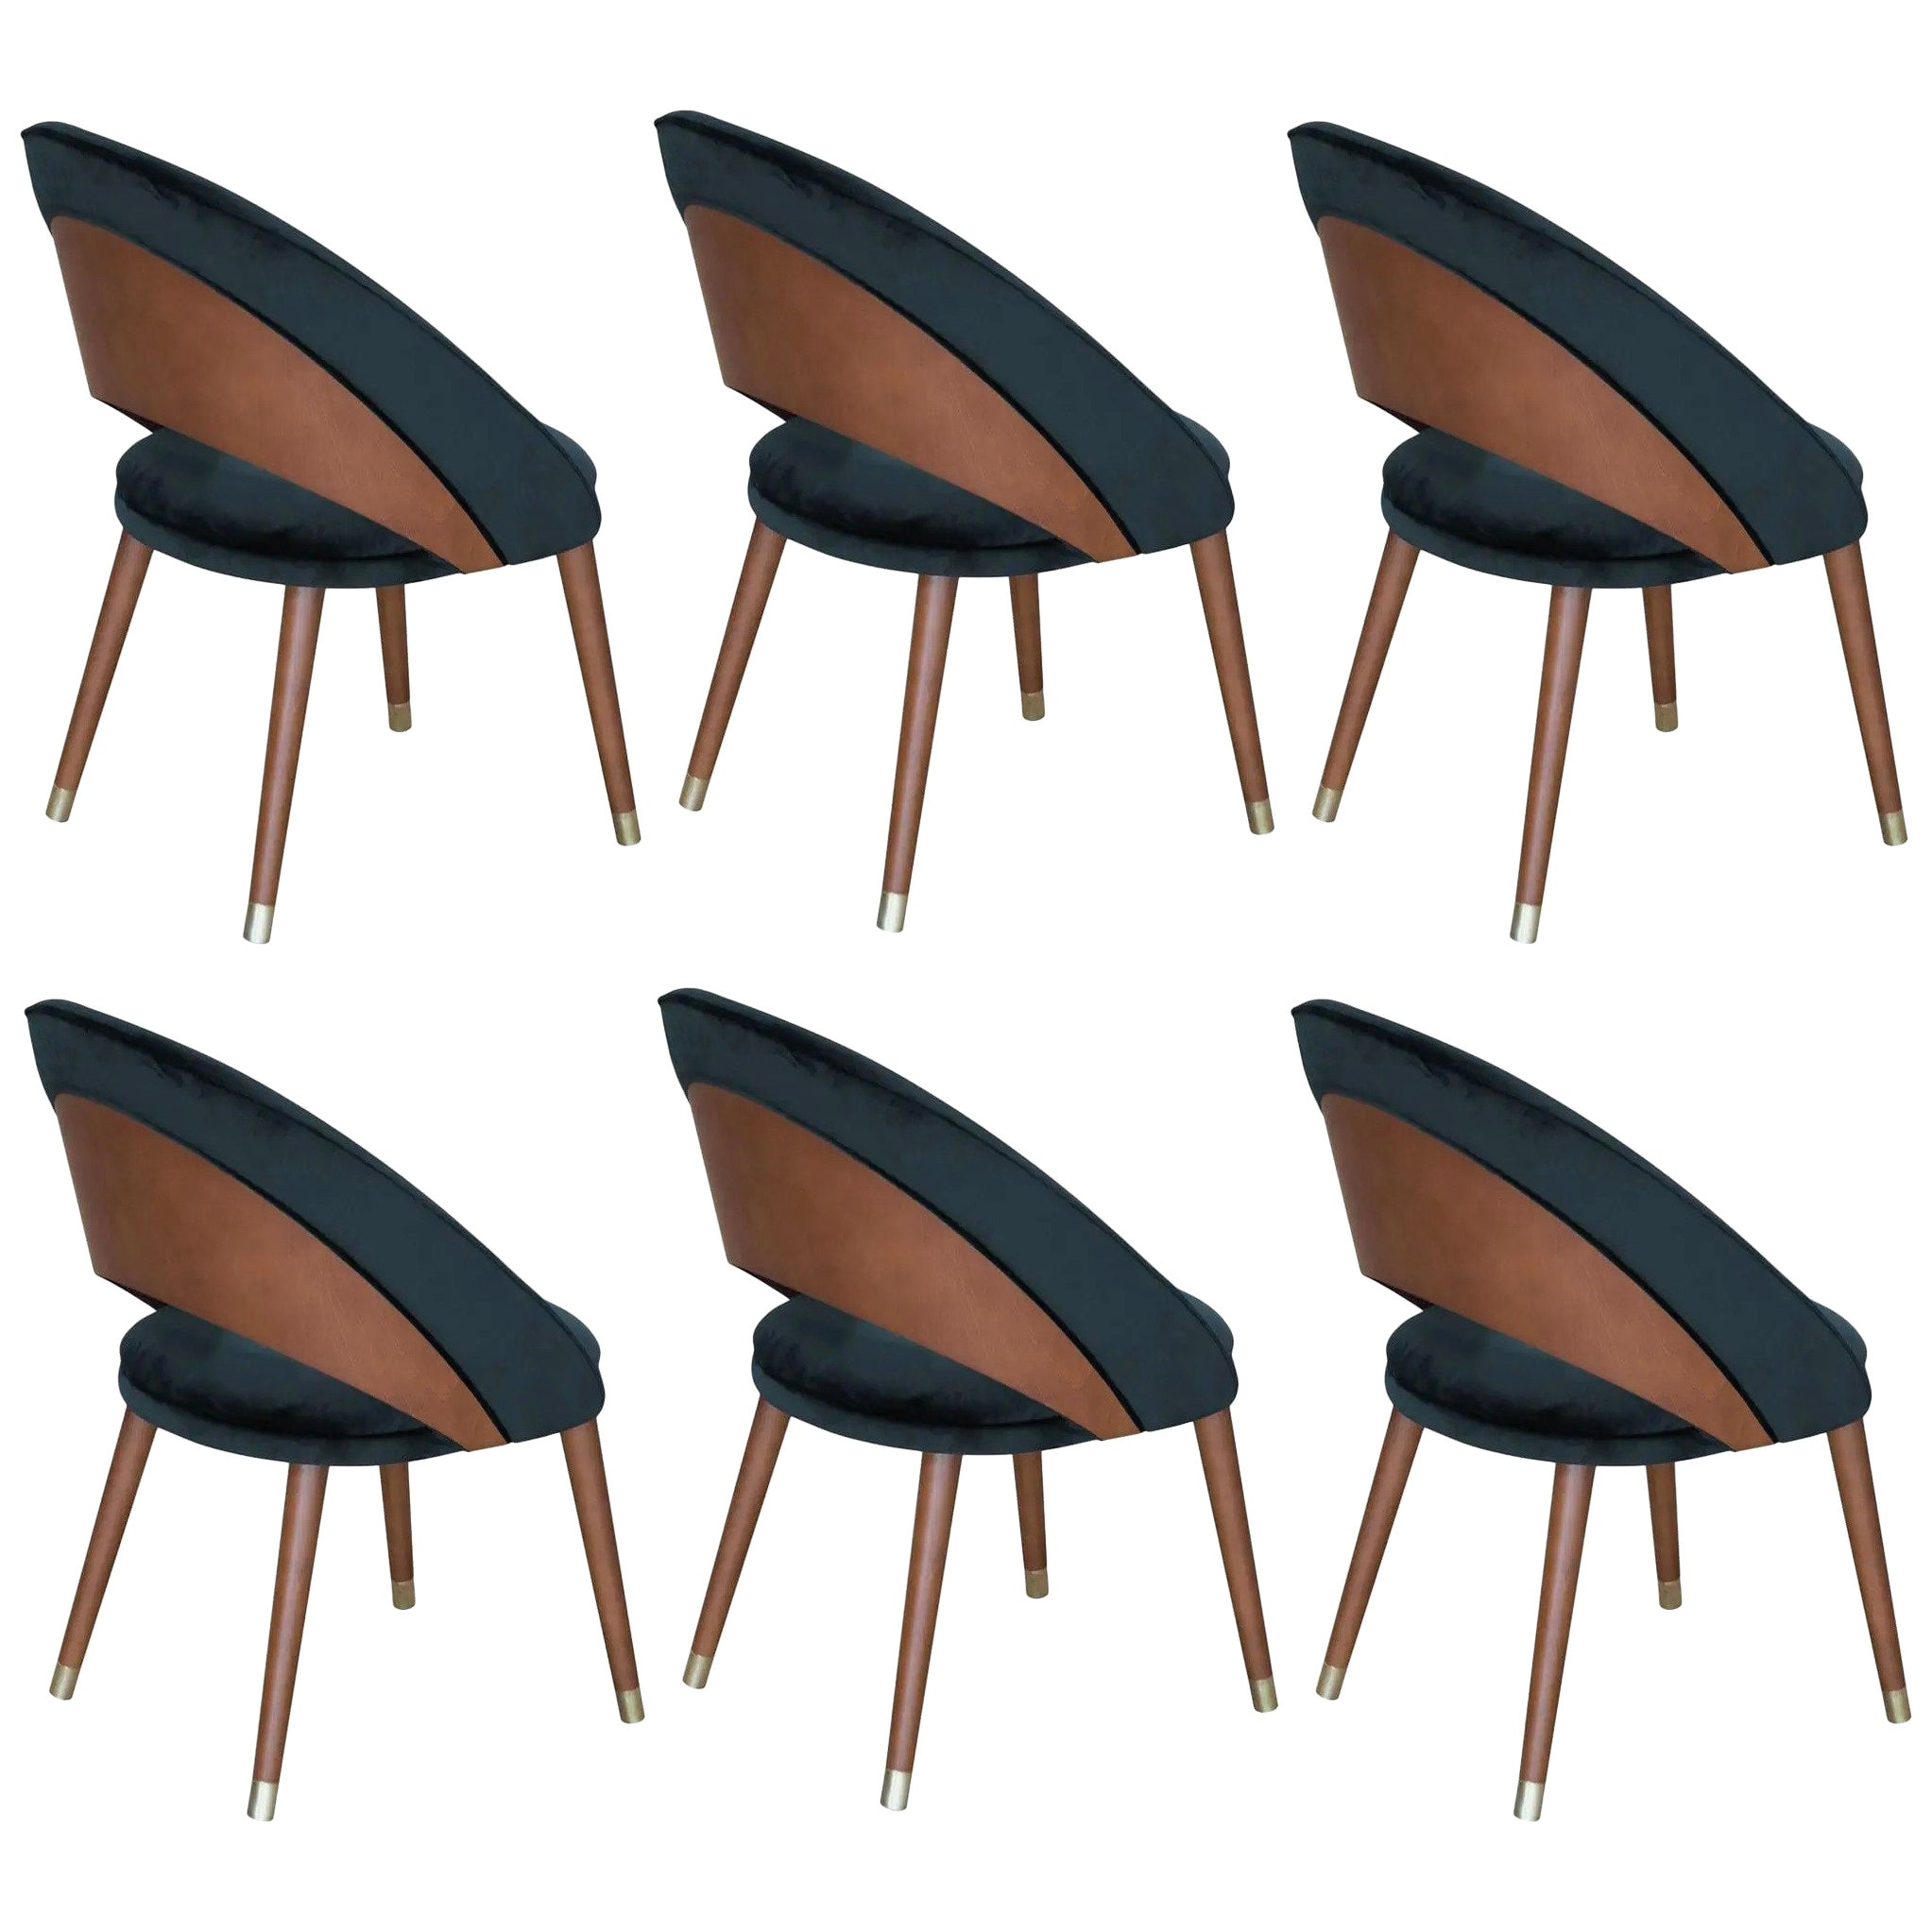 Mid-Century Modern Style Dining Chairs, Set of 6